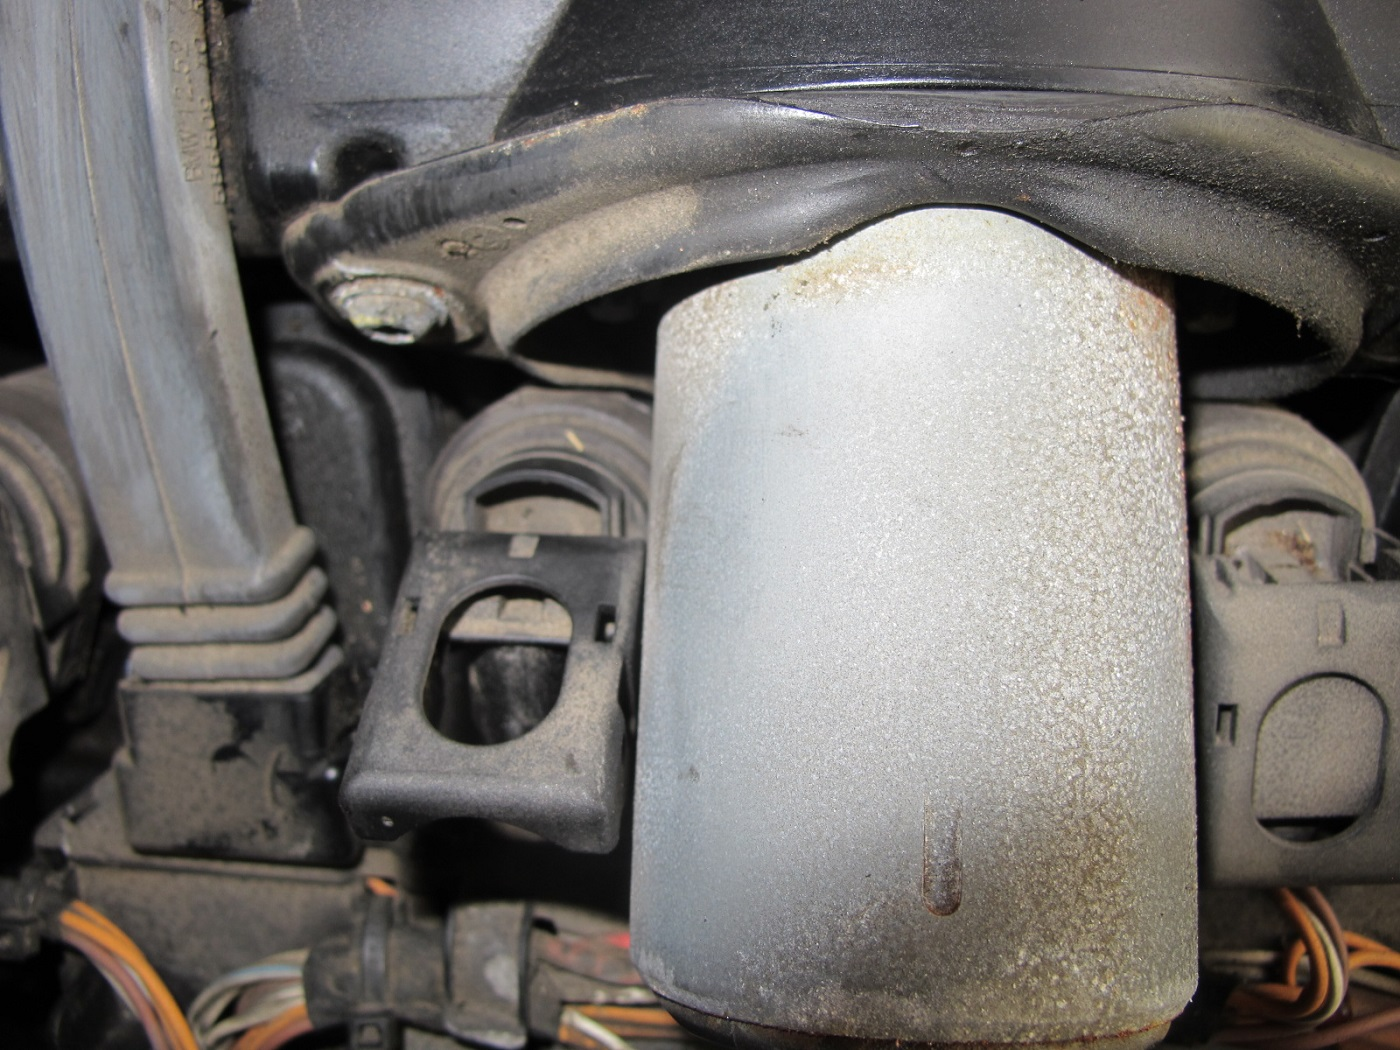 P0300, P0302, P0304, P0306, Engine running rough with little power